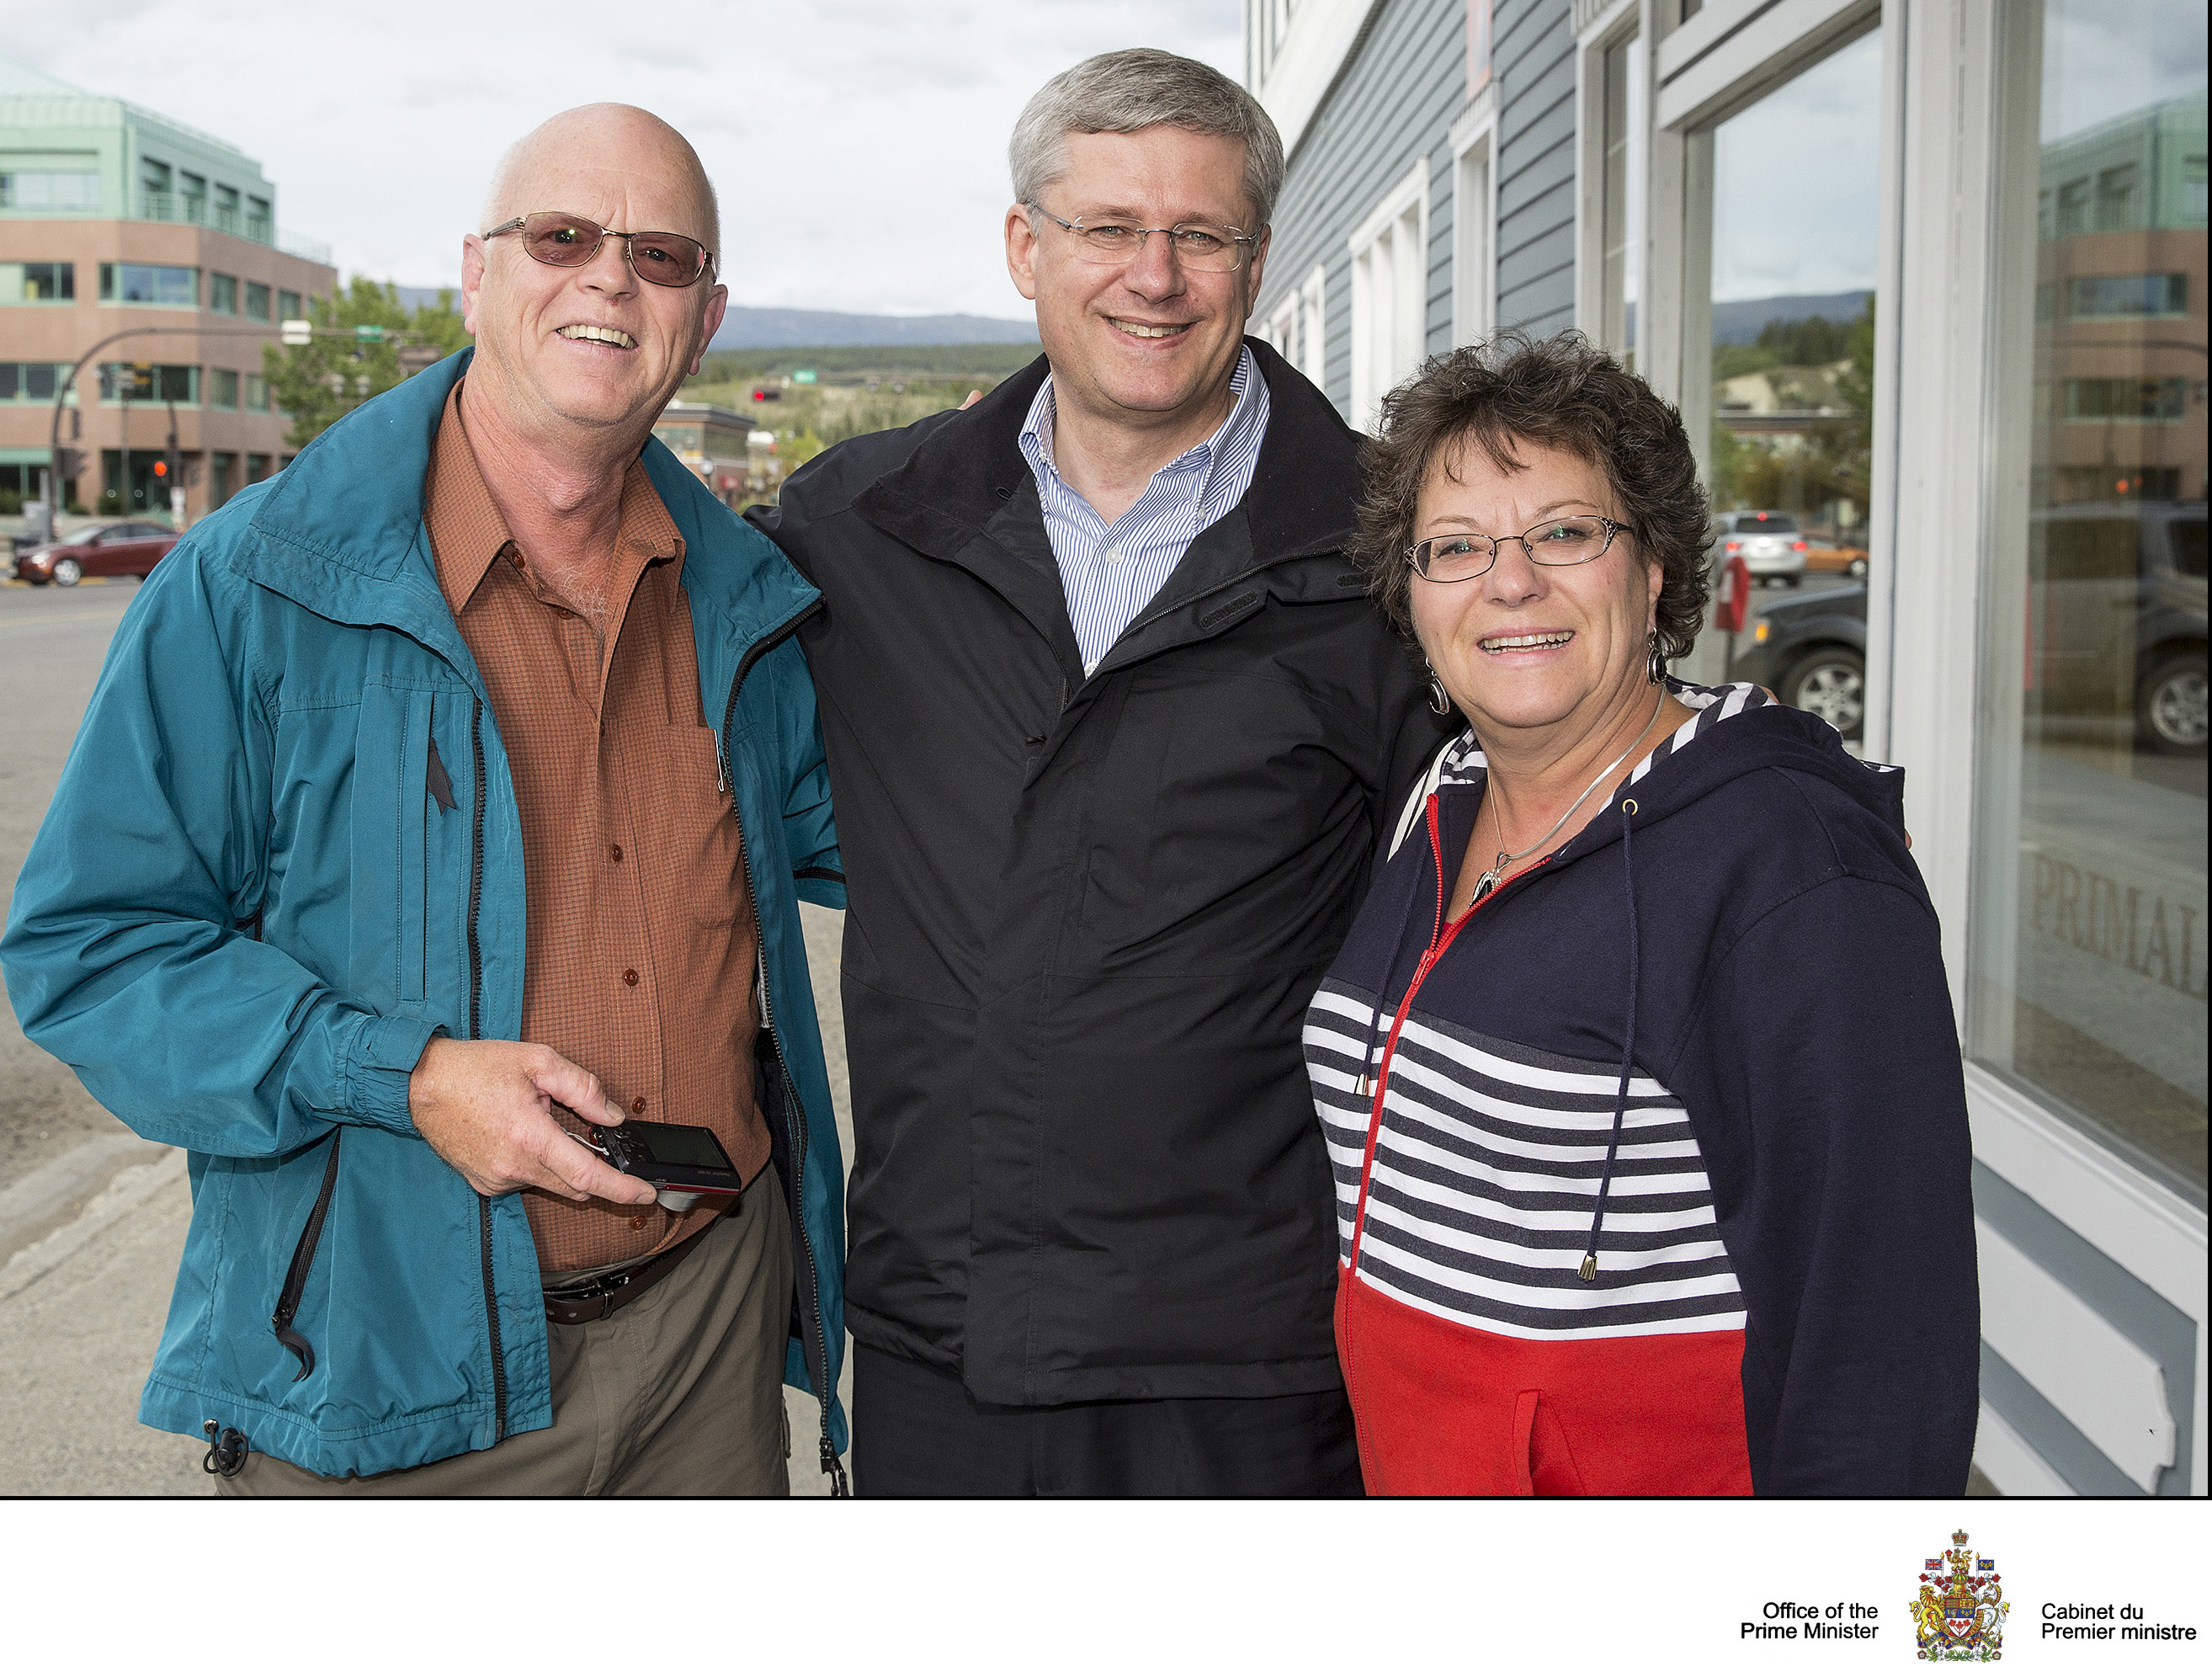 Prime Minister Harper with the Phil and Therese Ackland in Whitehorse